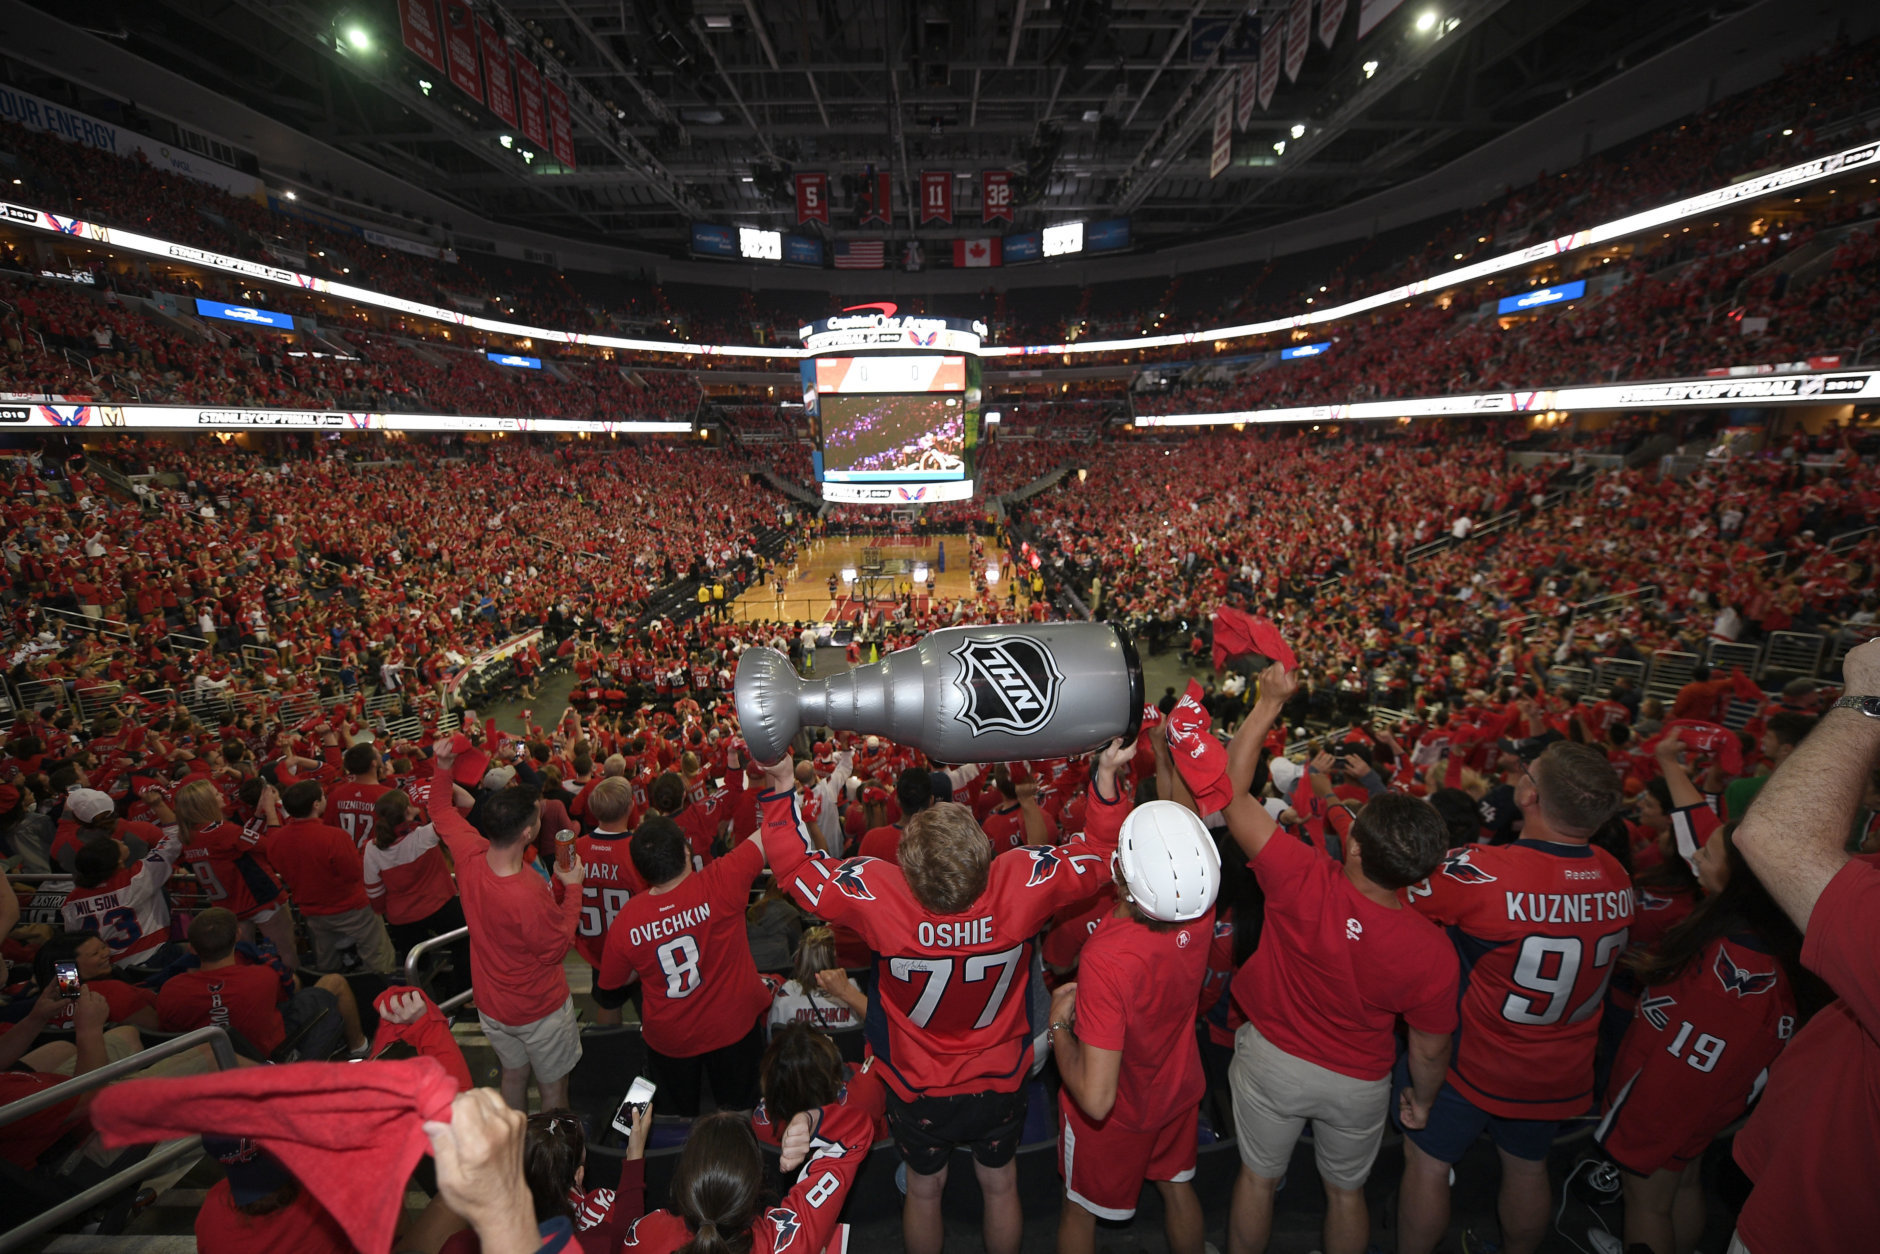 Fans react at a viewing party for Game 5 of the NHL hockey Stanley Cup Final between the Washington Capitals and the Vegas Golden Knights, Thursday, June 7, 2018, in Washington. (AP Photo/Nick Wass)